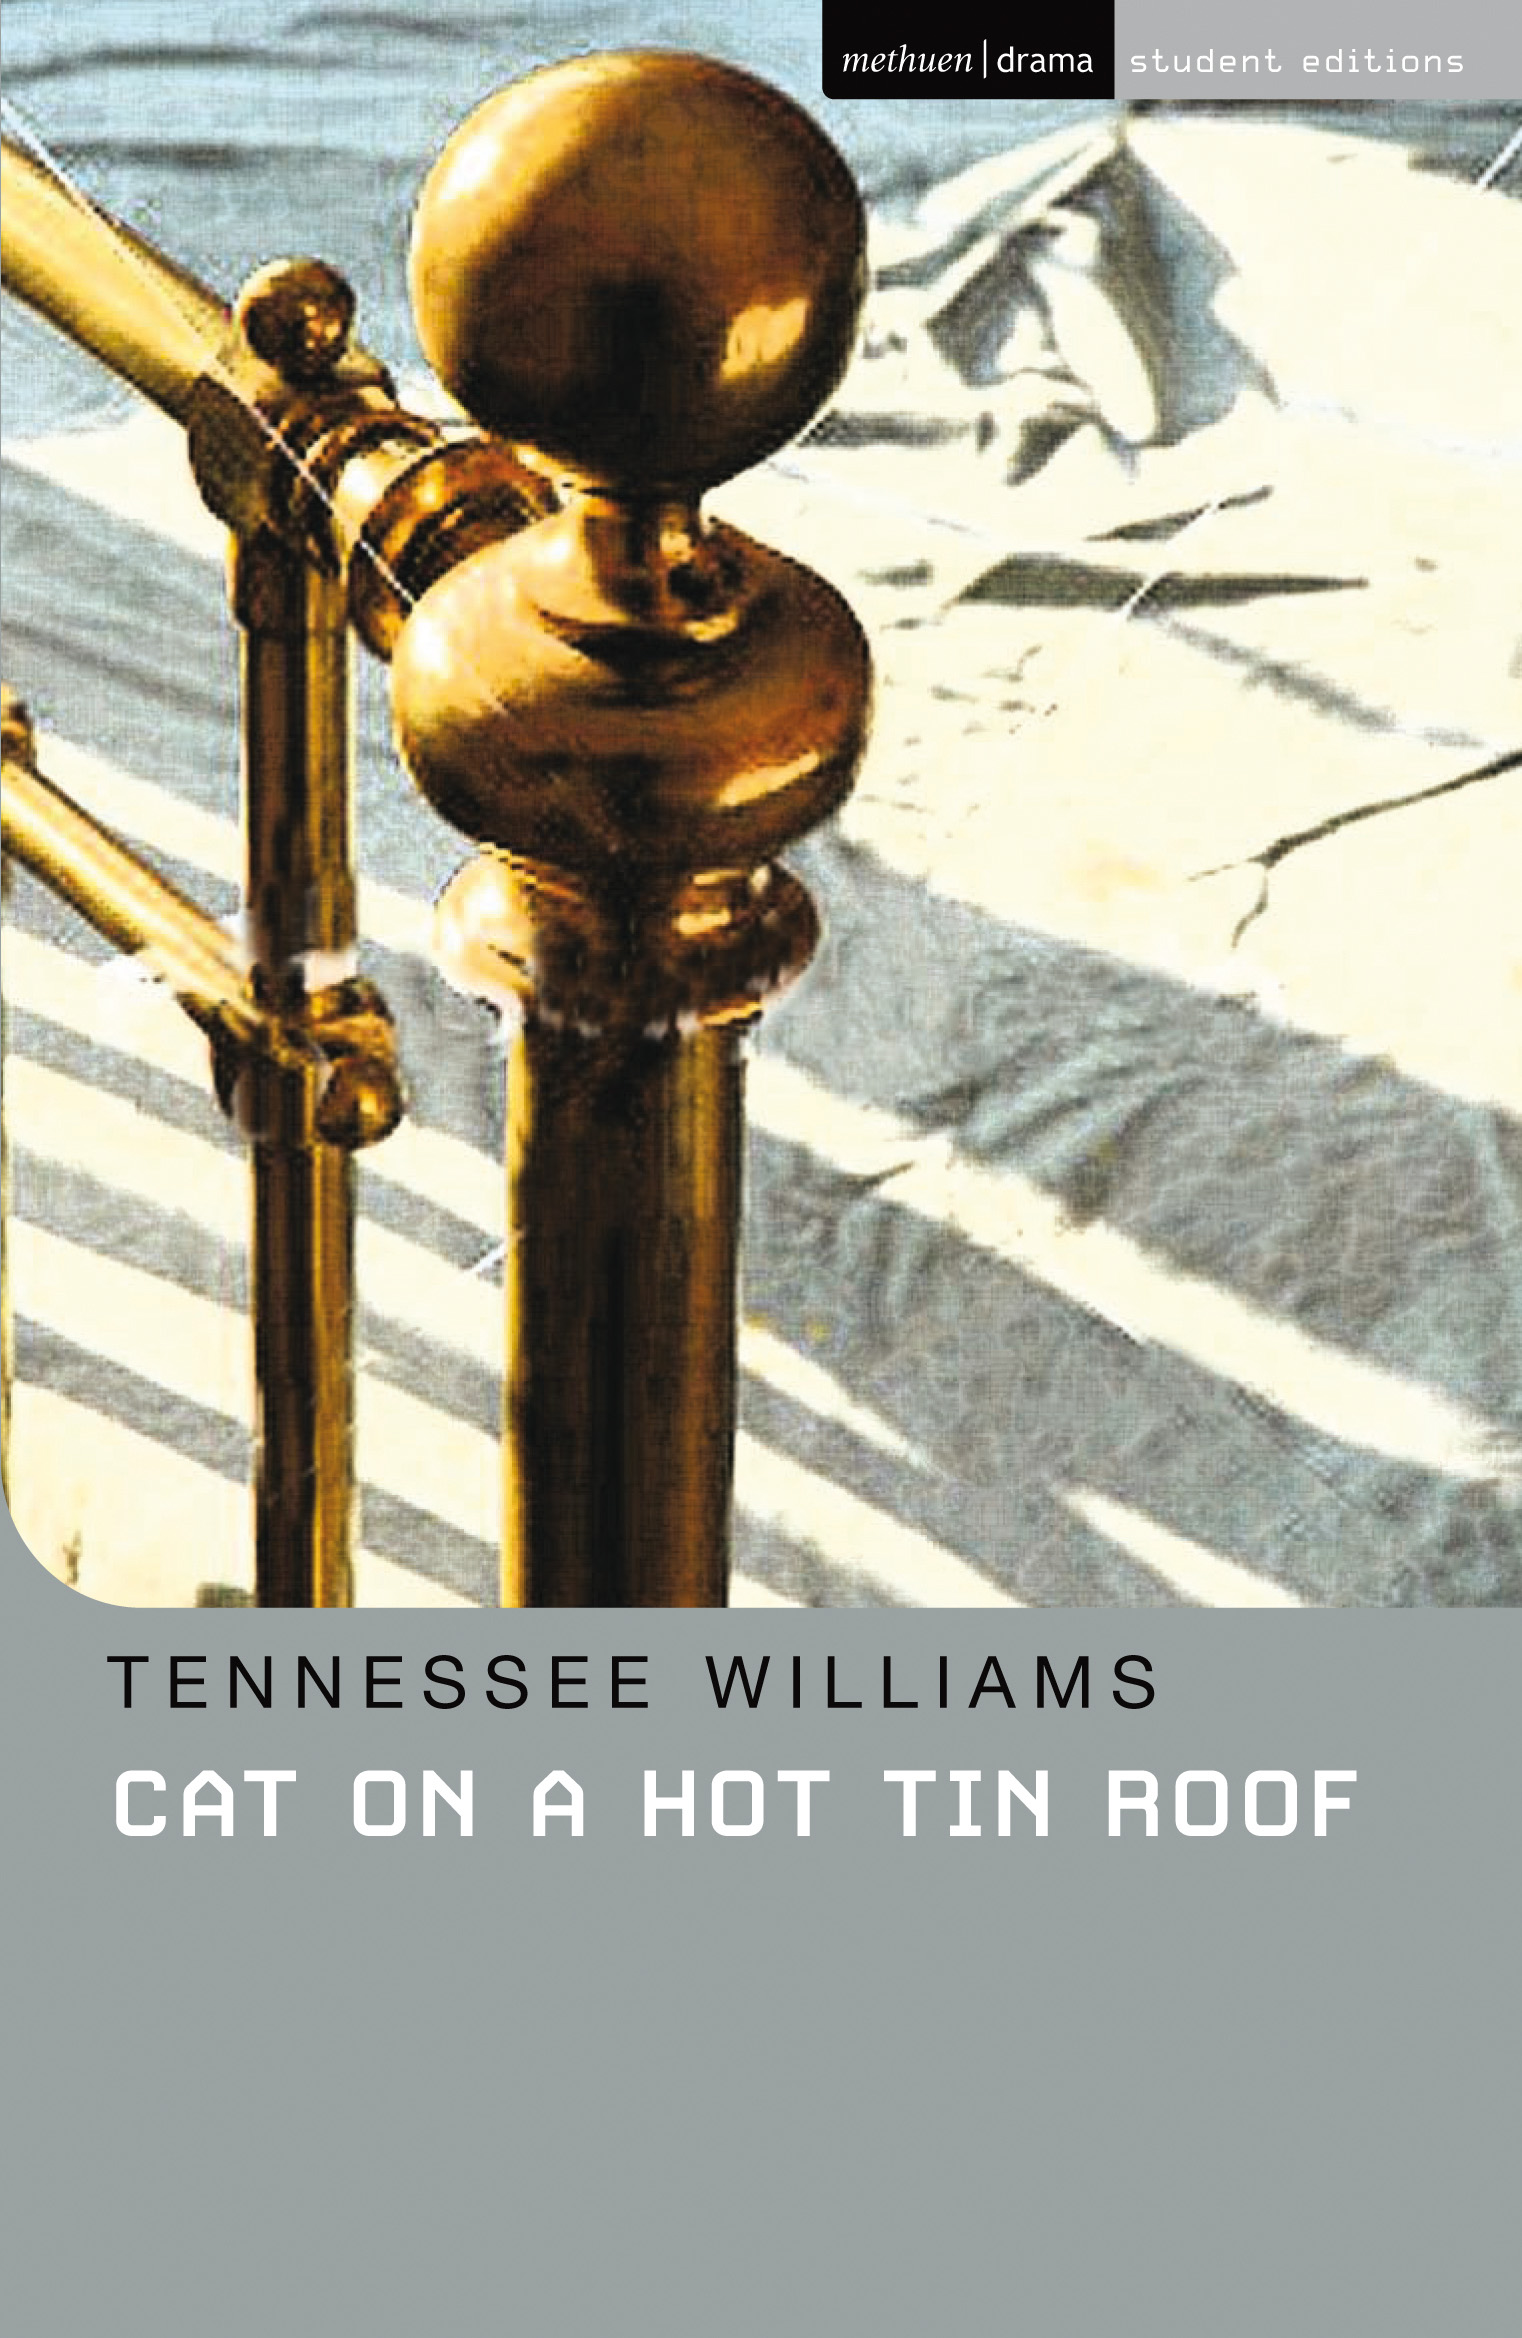 Cat on a Hot Tin Roof: Methuen Student Editions